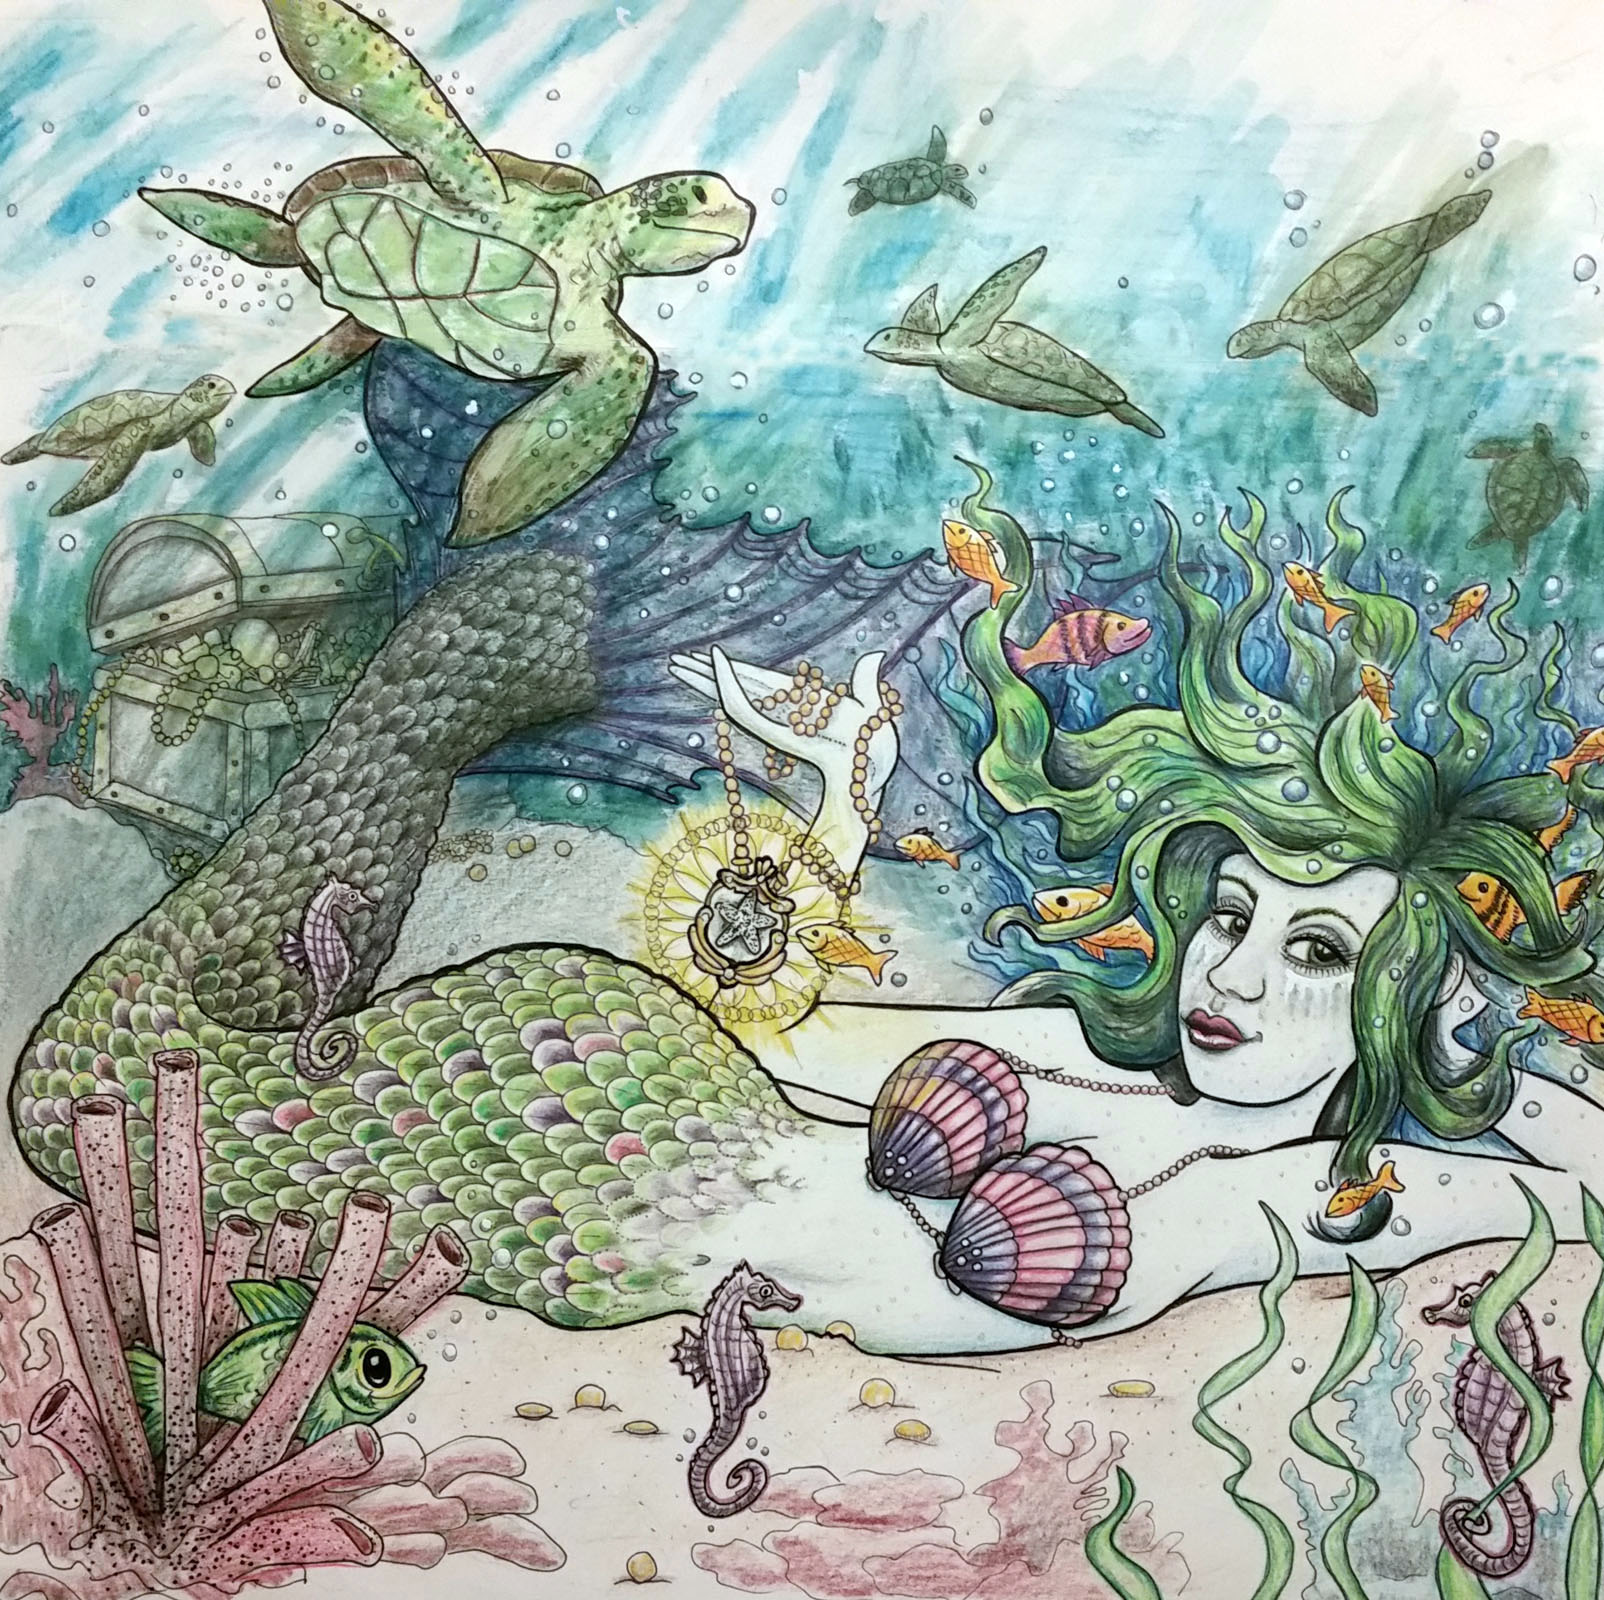 Mermaid-Shelly-Dax